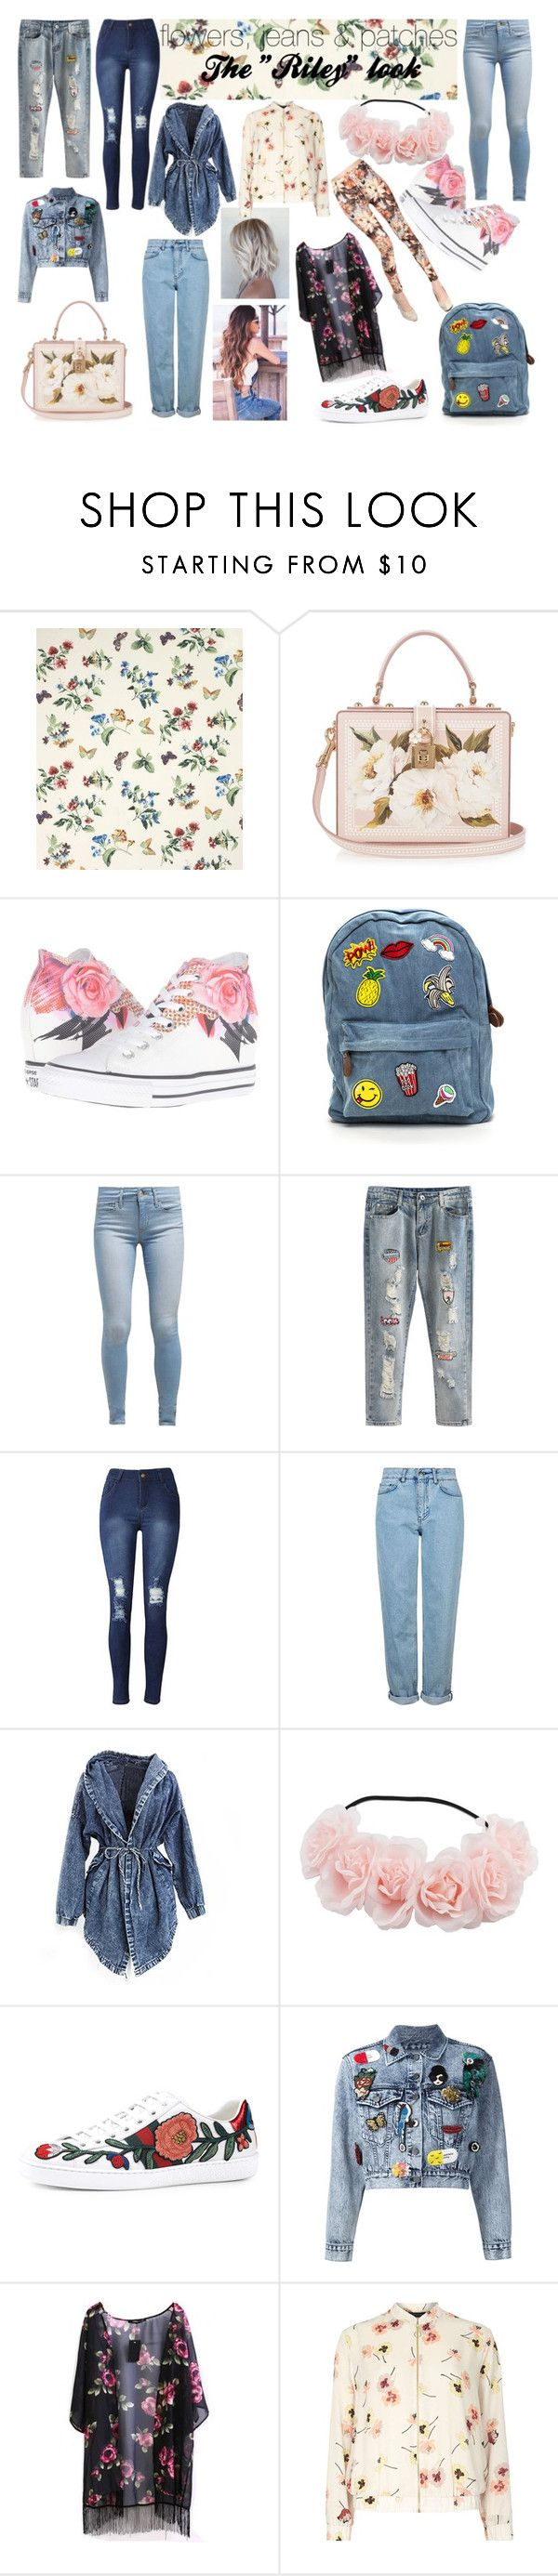 """""""Riley"""" by maiaytina on Polyvore featuring moda, Country Curtains, Dolce&Gabbana, Converse, Levi's, Topshop, Gucci, Alice + Olivia, Dorothy Perkins y Winter"""